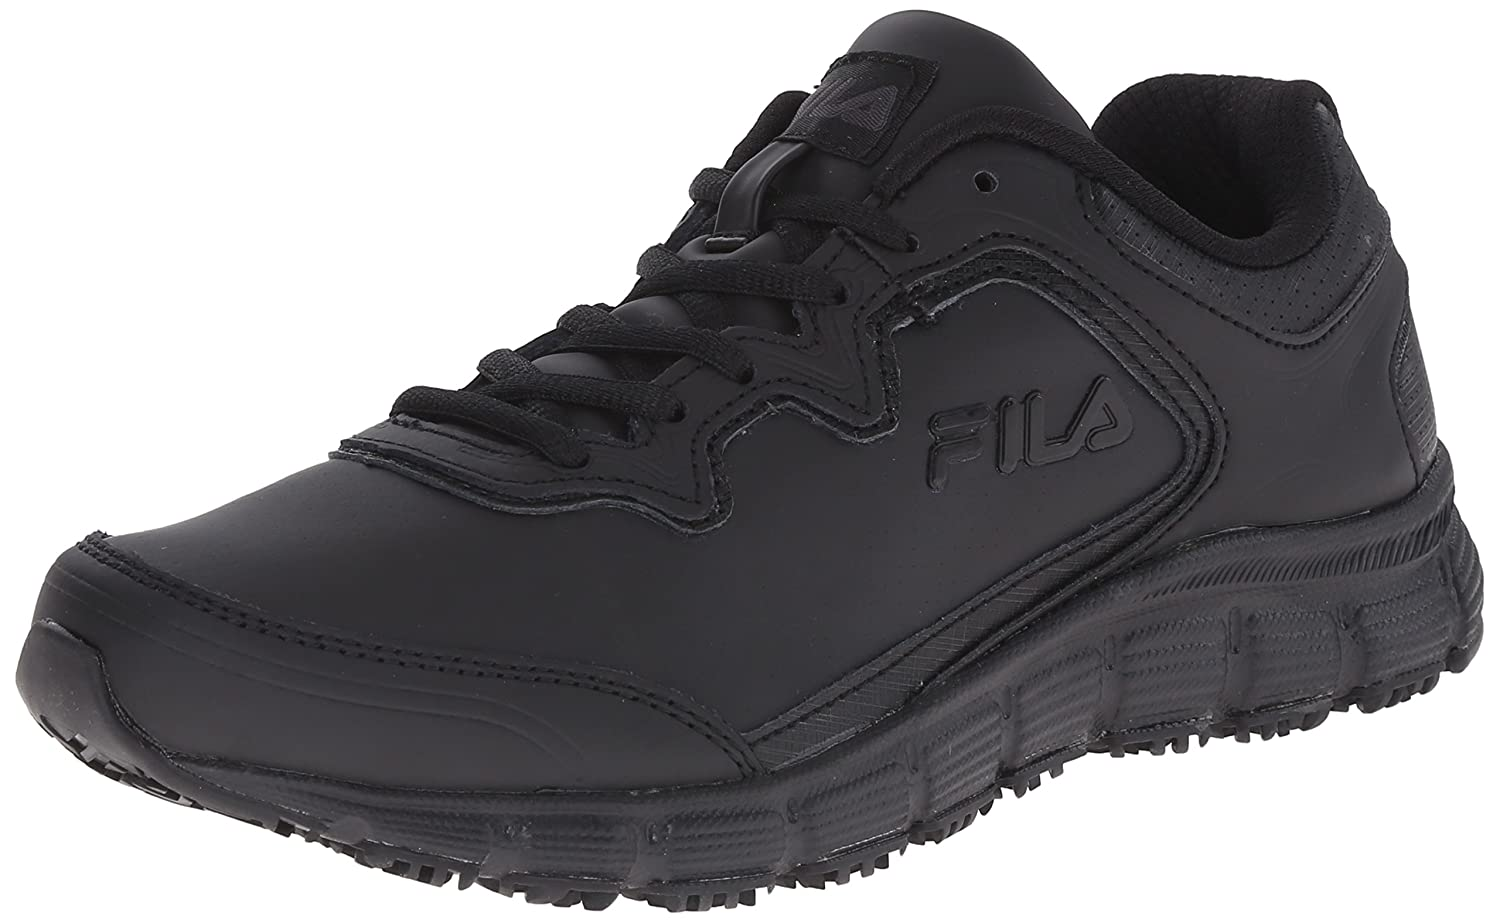 Fila Women's Memory Fresh Start Slip Resistant Work Shoe B0107M1HRU 6.5 B(M) US|Black/Black/Black